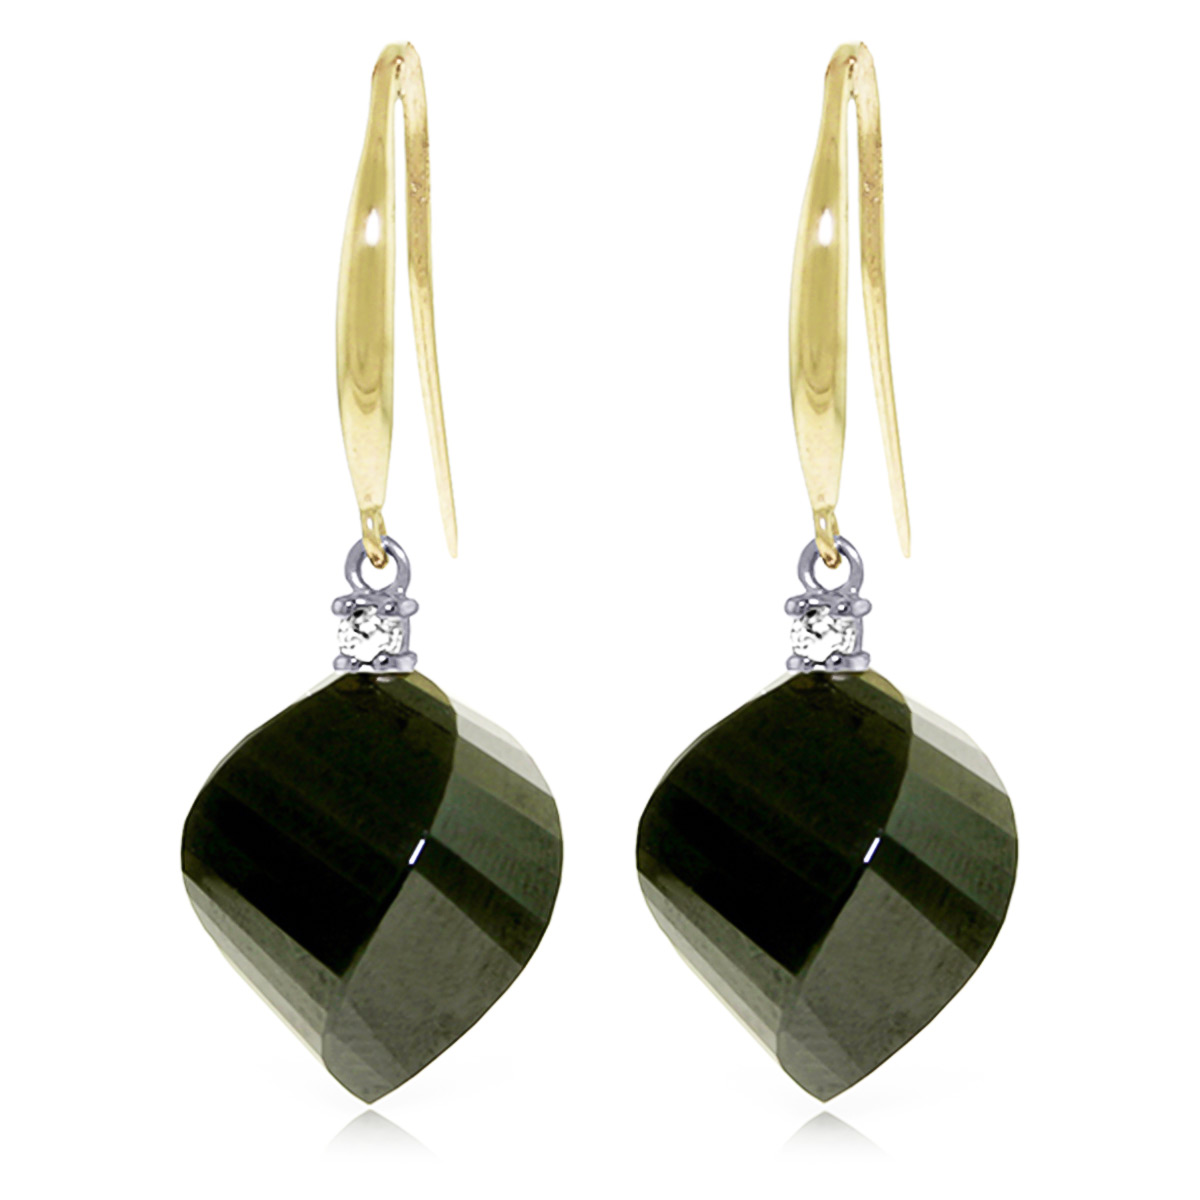 Black Spinel Drop Earrings 31.1 ctw in 9ct Gold